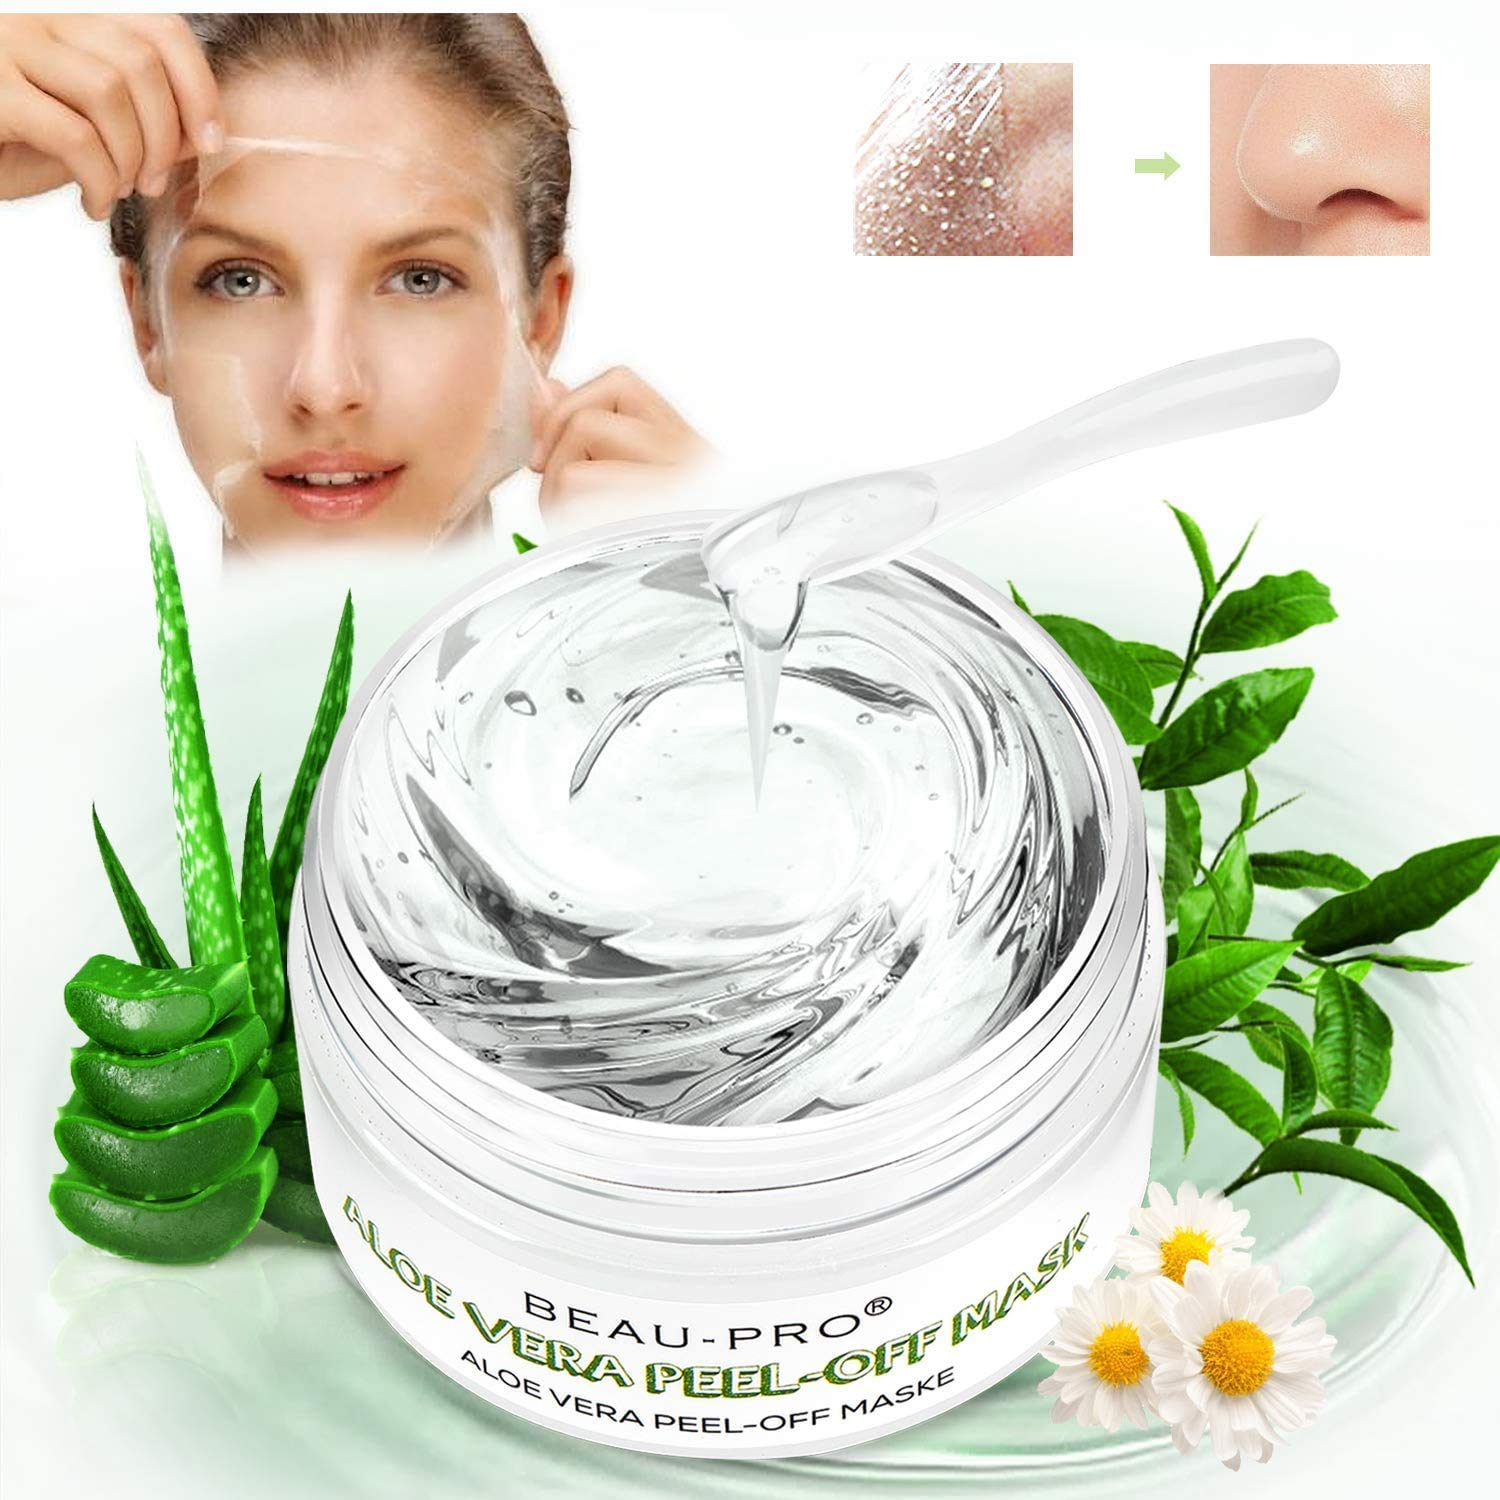 Blackhead Remover Mask Peel Off Face Masks Aloe Vera with Tea Tree Oil Mask,Deep Cleansing Skin Care for All Skin Types 100 ml